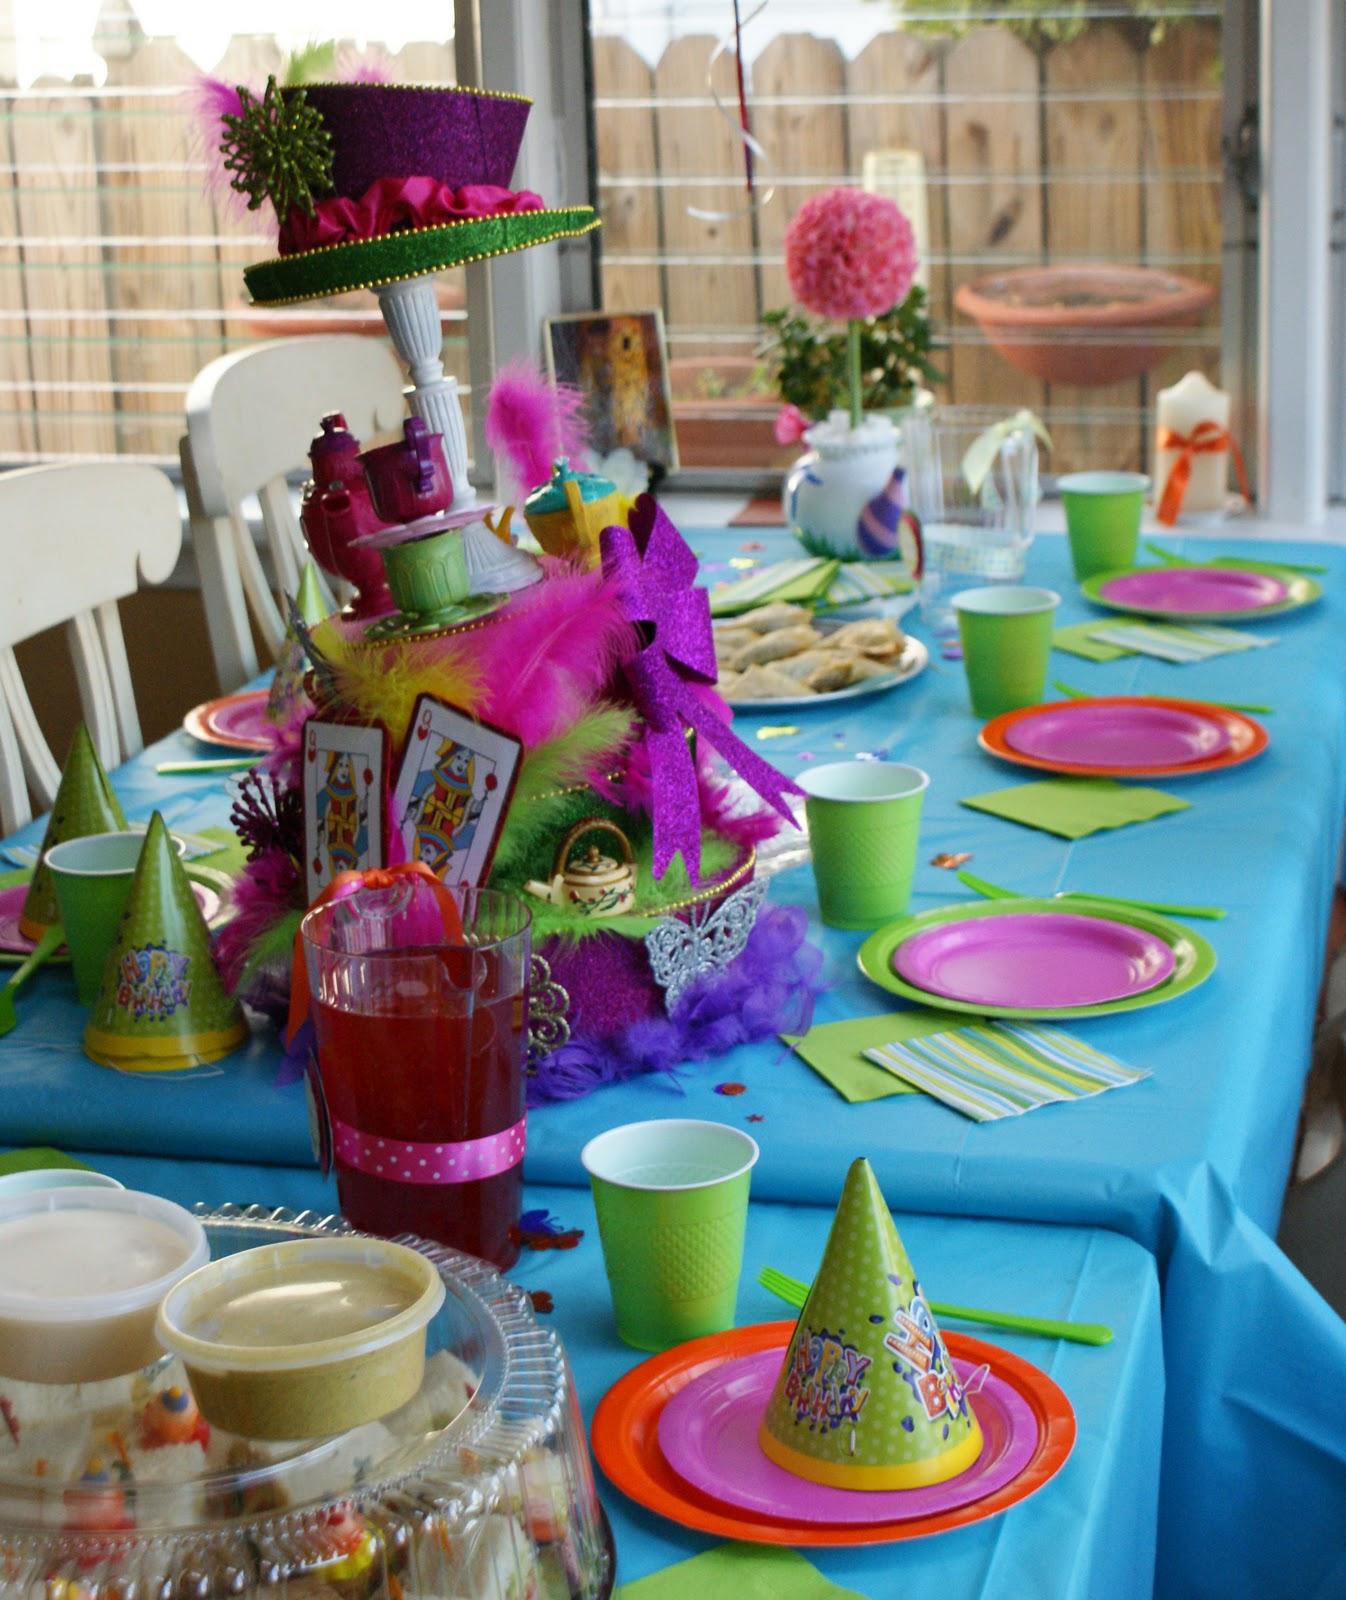 Party Decorations Table Centerpieces: Paper Chick: Alice In Wonderland Birthday Party Centerpiece